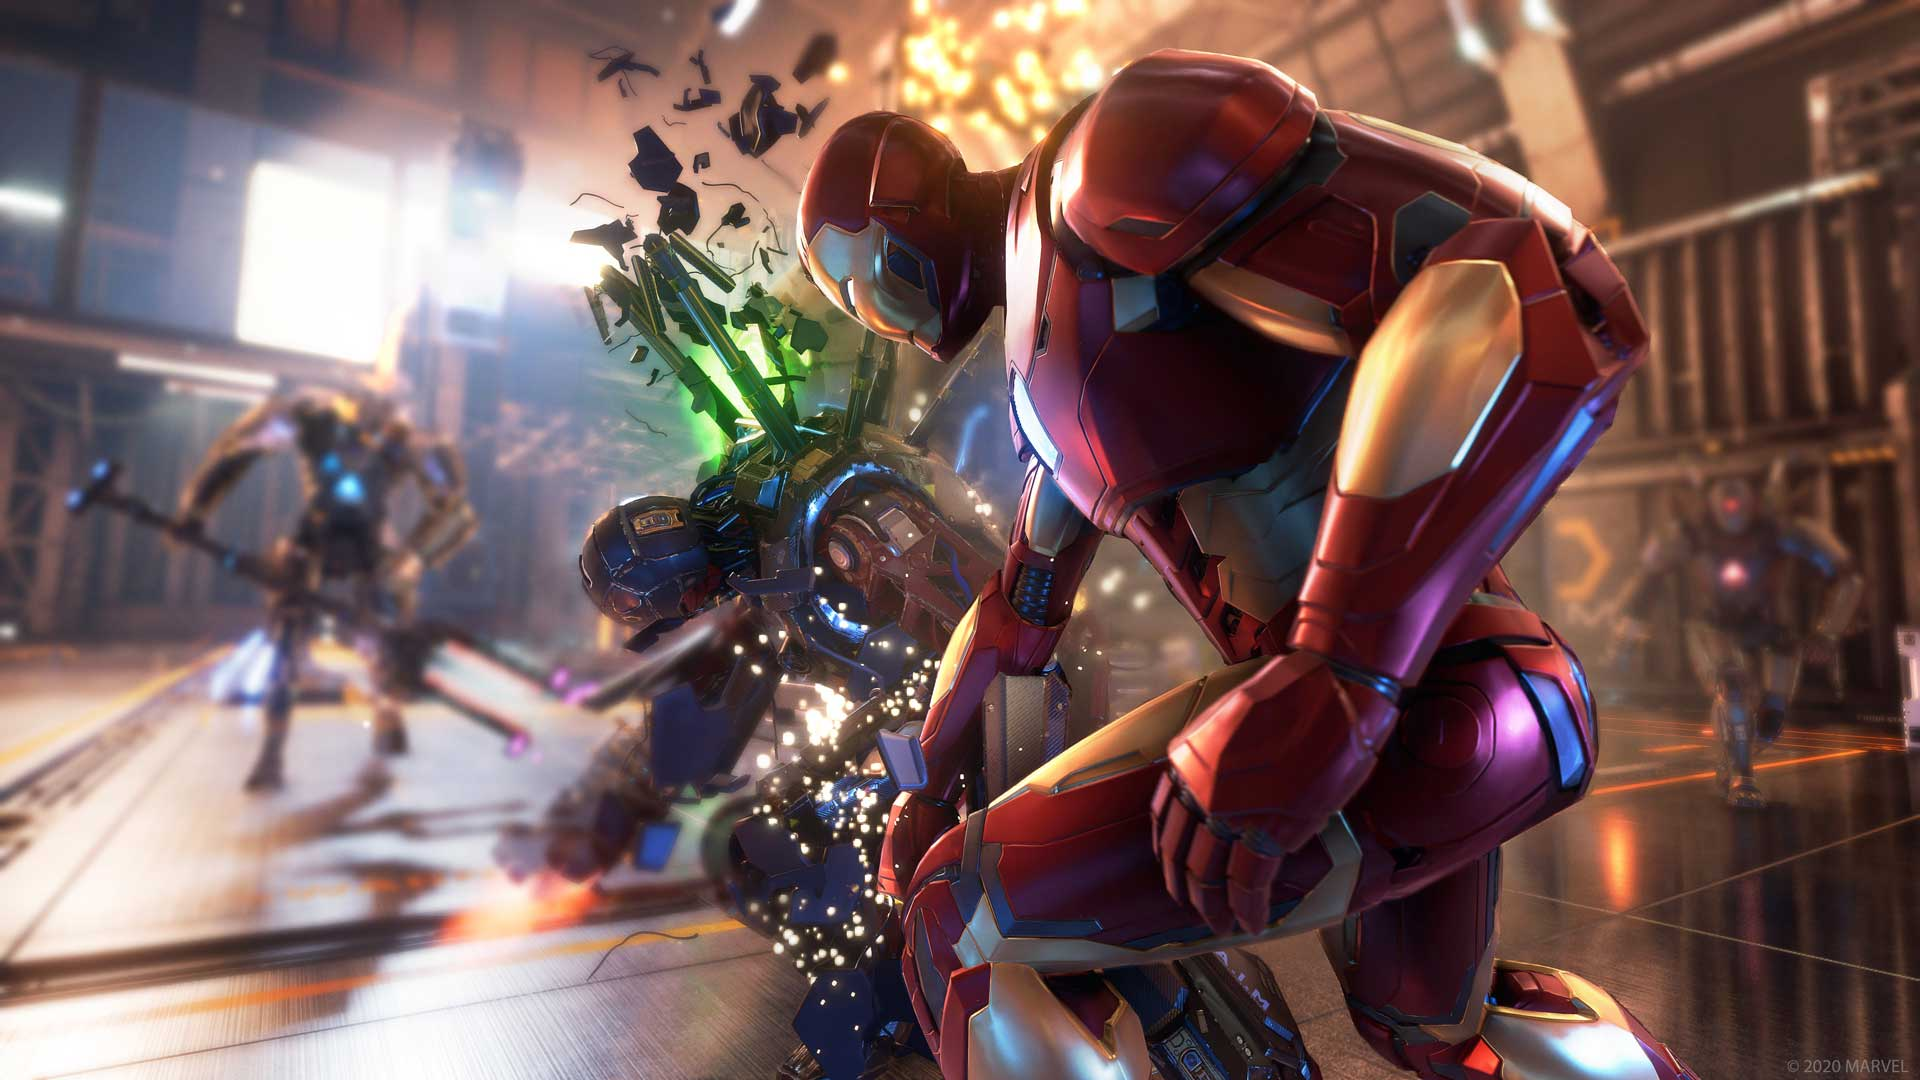 Marvel's Avengers XP PS4 PS5 Exclusive PlayStation